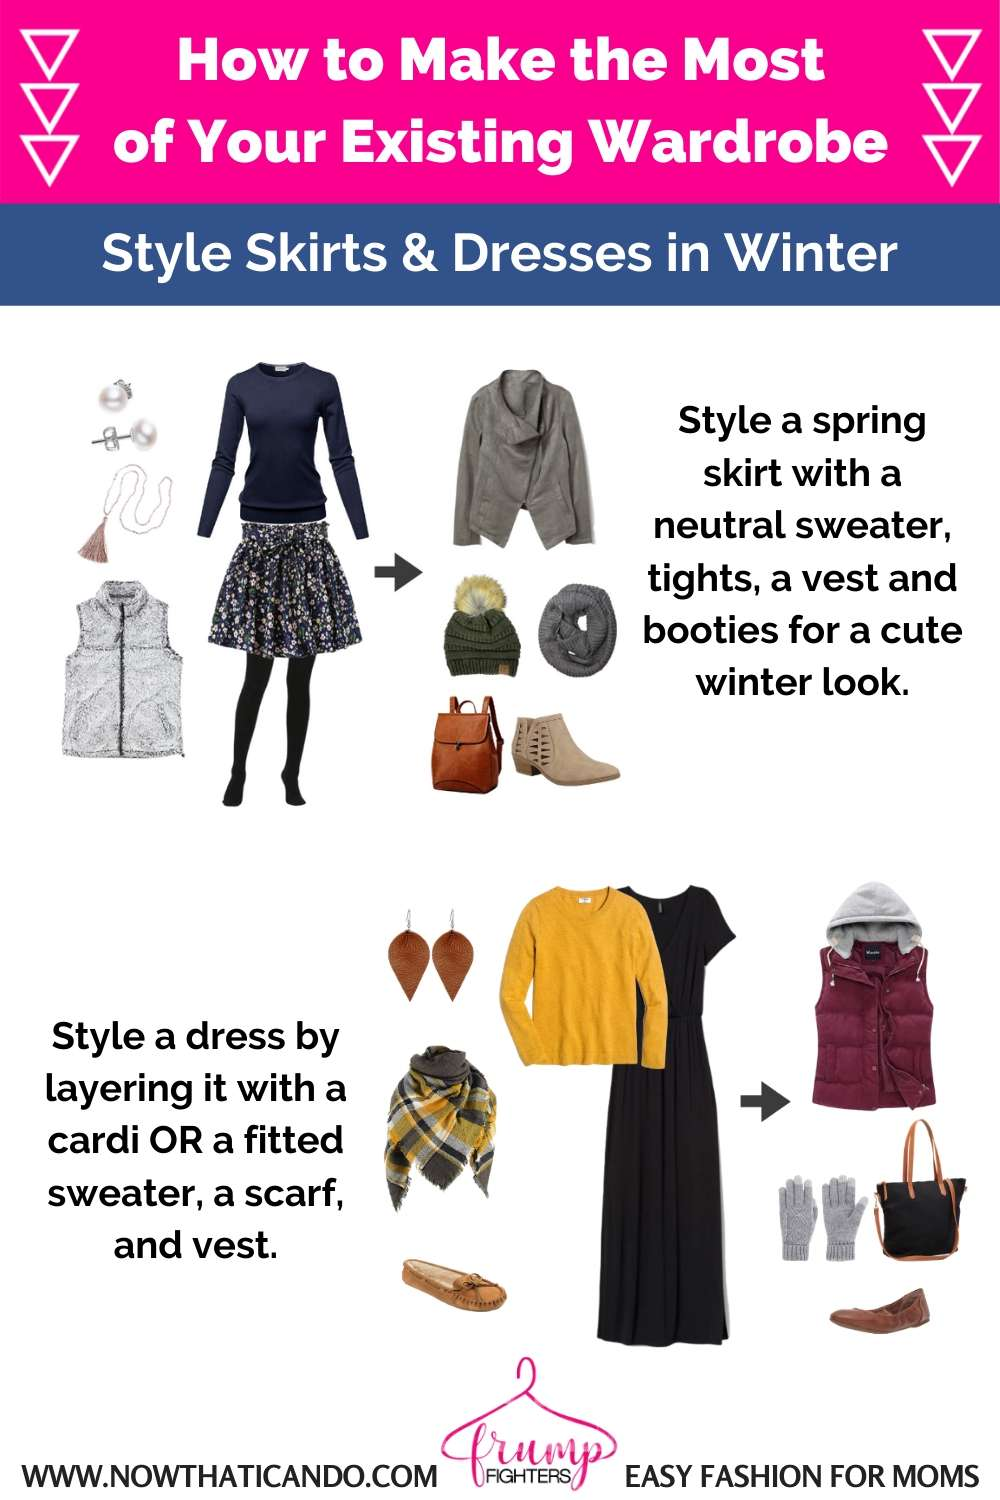 How to make the most of your existing wardrobe - Changing your wardrobe on a budget - how to style a skirt or dress in winter